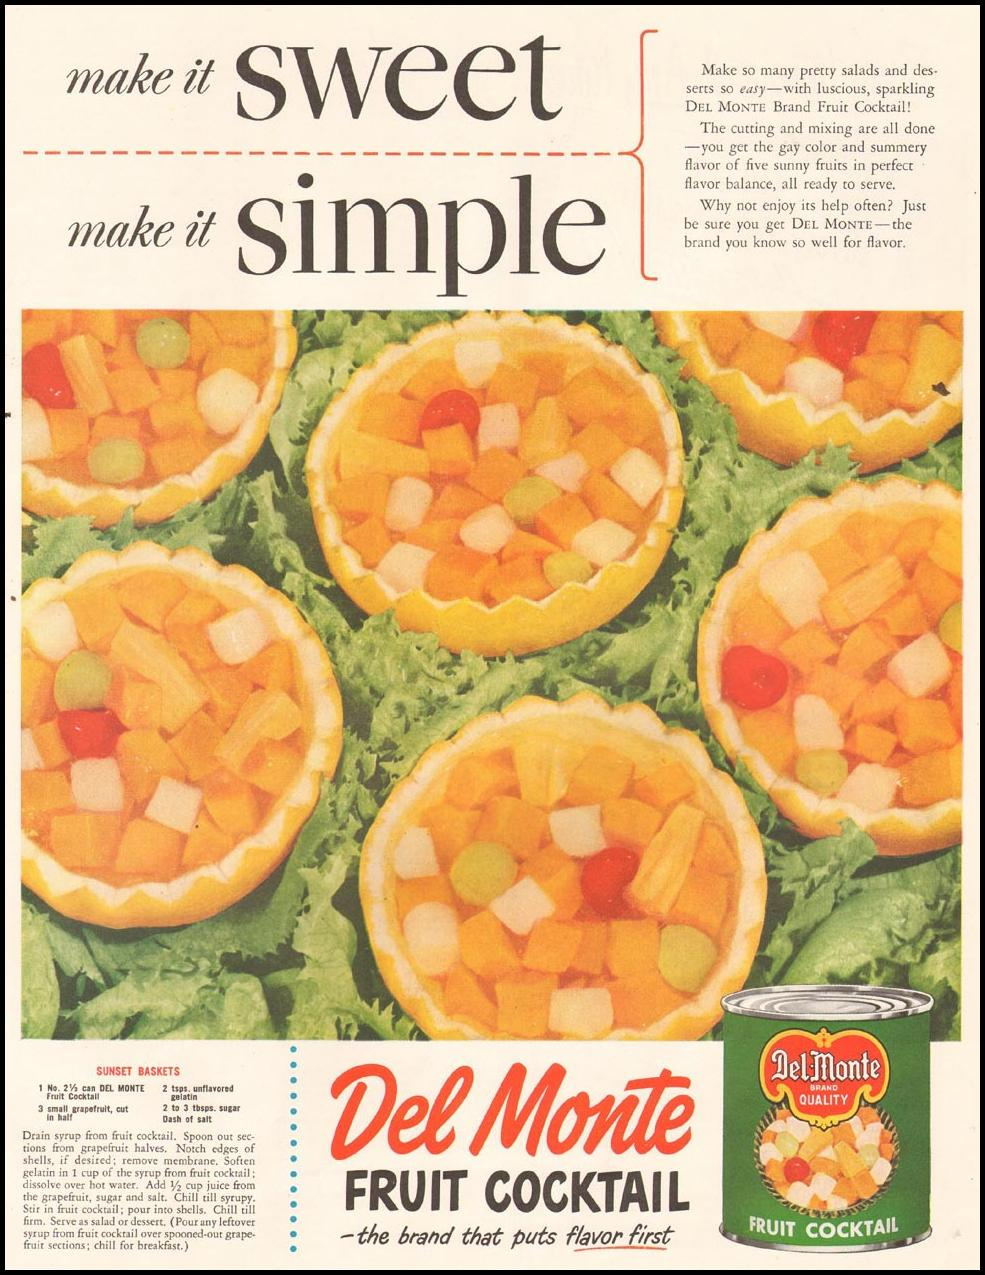 DEL MONTE FRUIT COCKTAIL LADIES' HOME JOURNAL 11/01/1950 p. 105